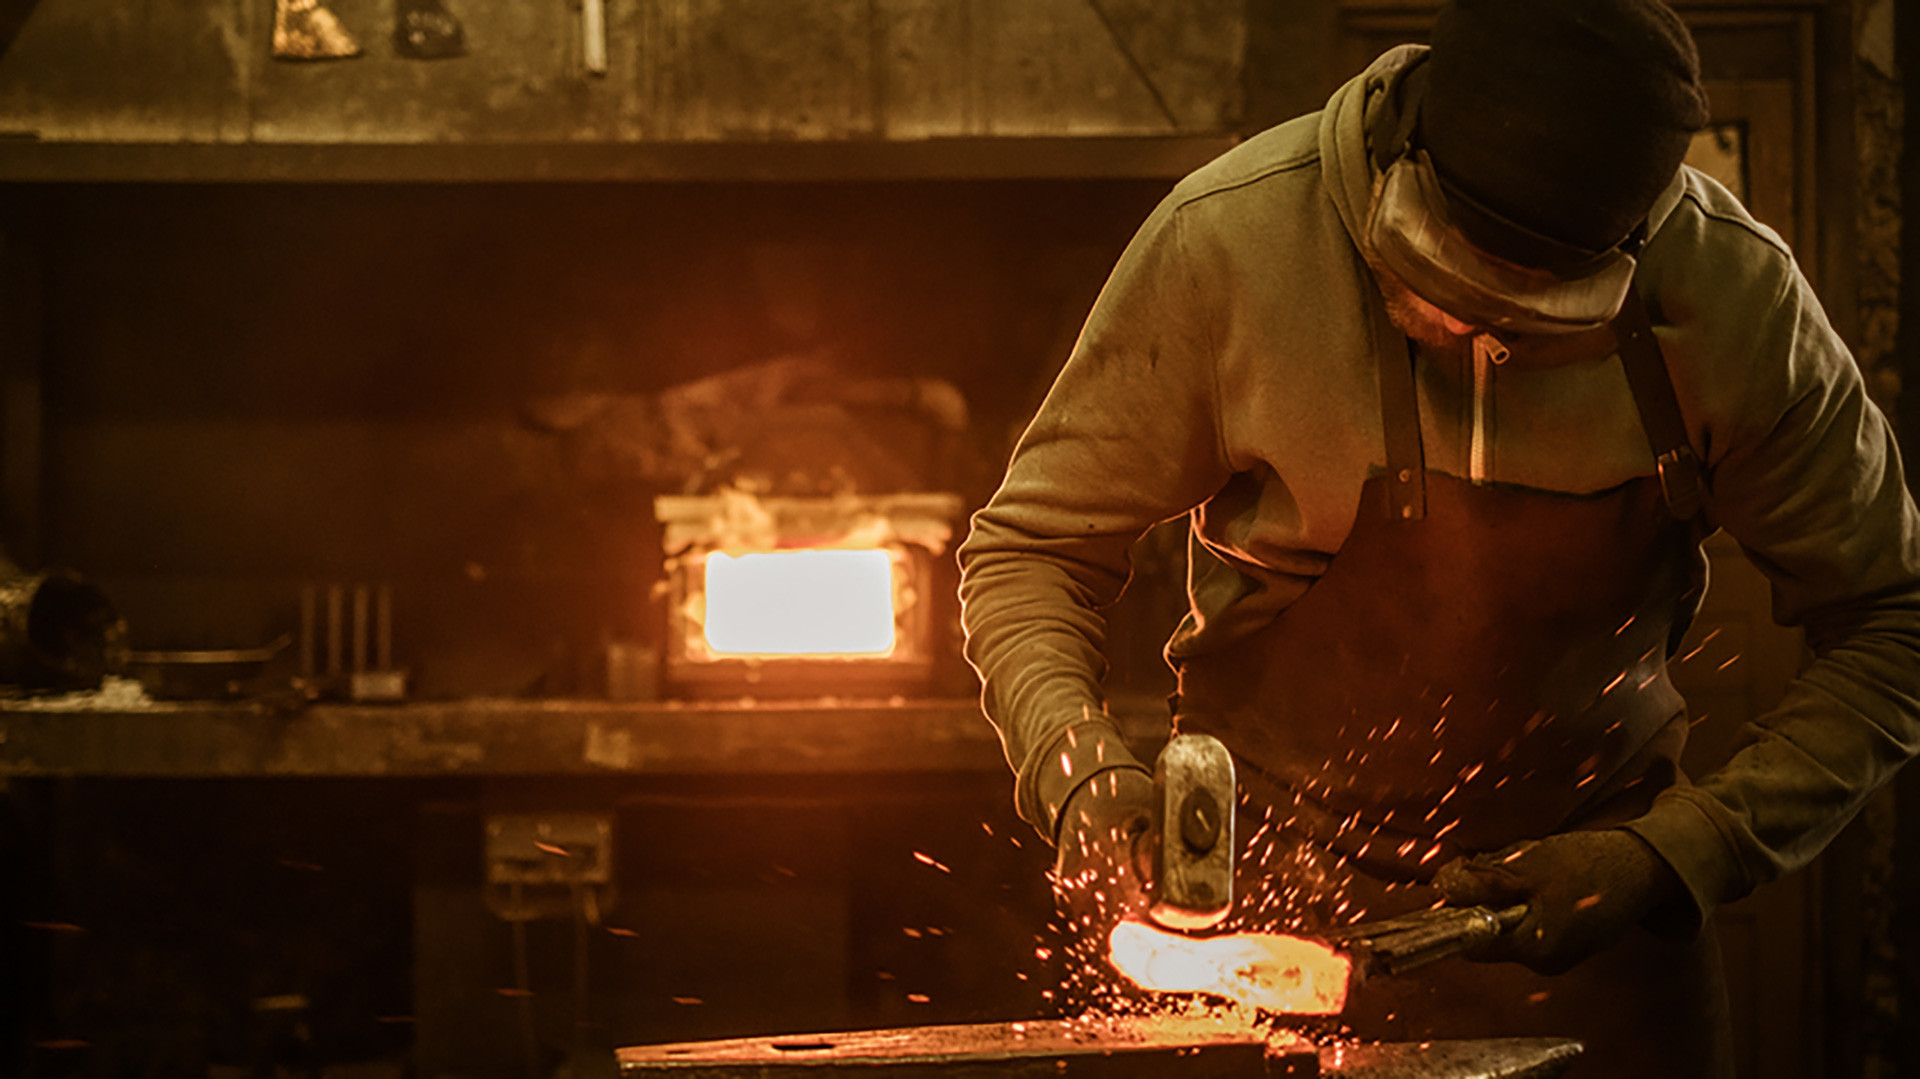 The Russian blacksmith's workshop